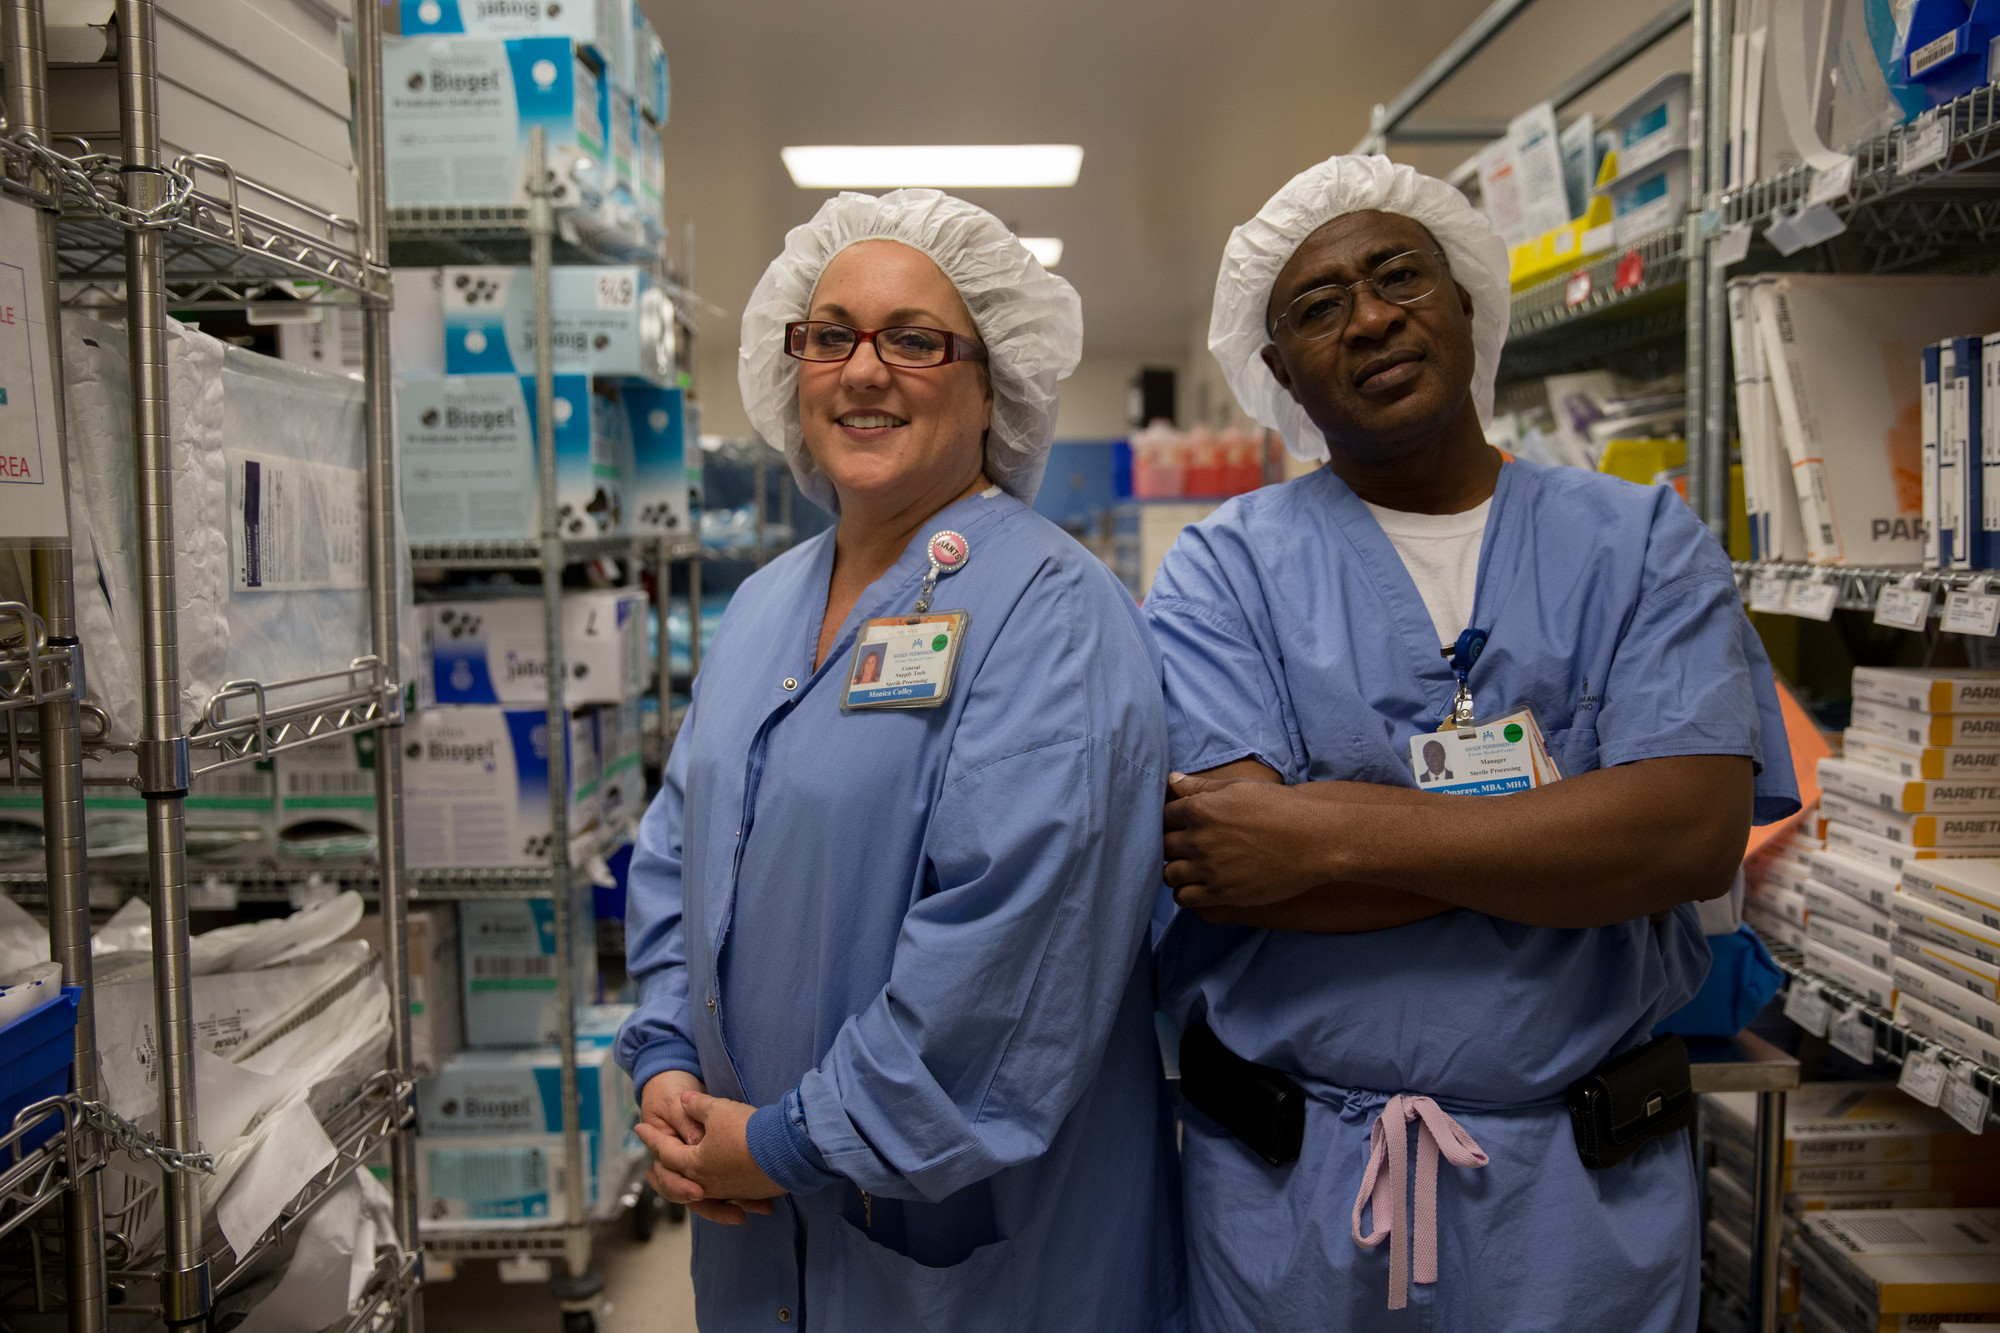 Two health care workers, wearing blue scrubs and white hair coverings, in a supply closet